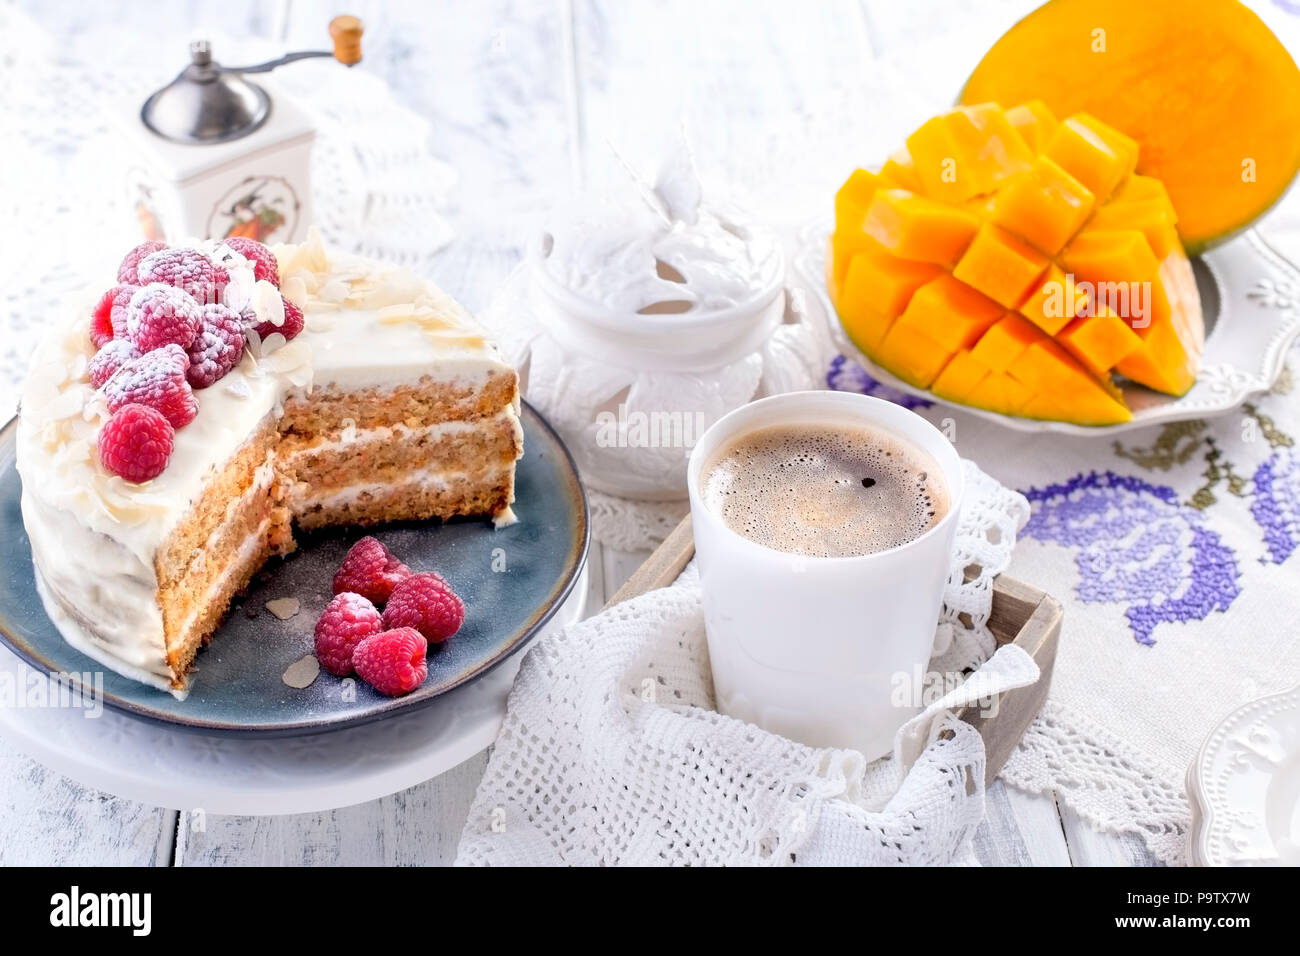 Cut the cake with white cream, for breakfast. A mango fruit. White background, tablecloth with lace, a cup of fragrant black coffee and free space for text or advertising. - Stock Image